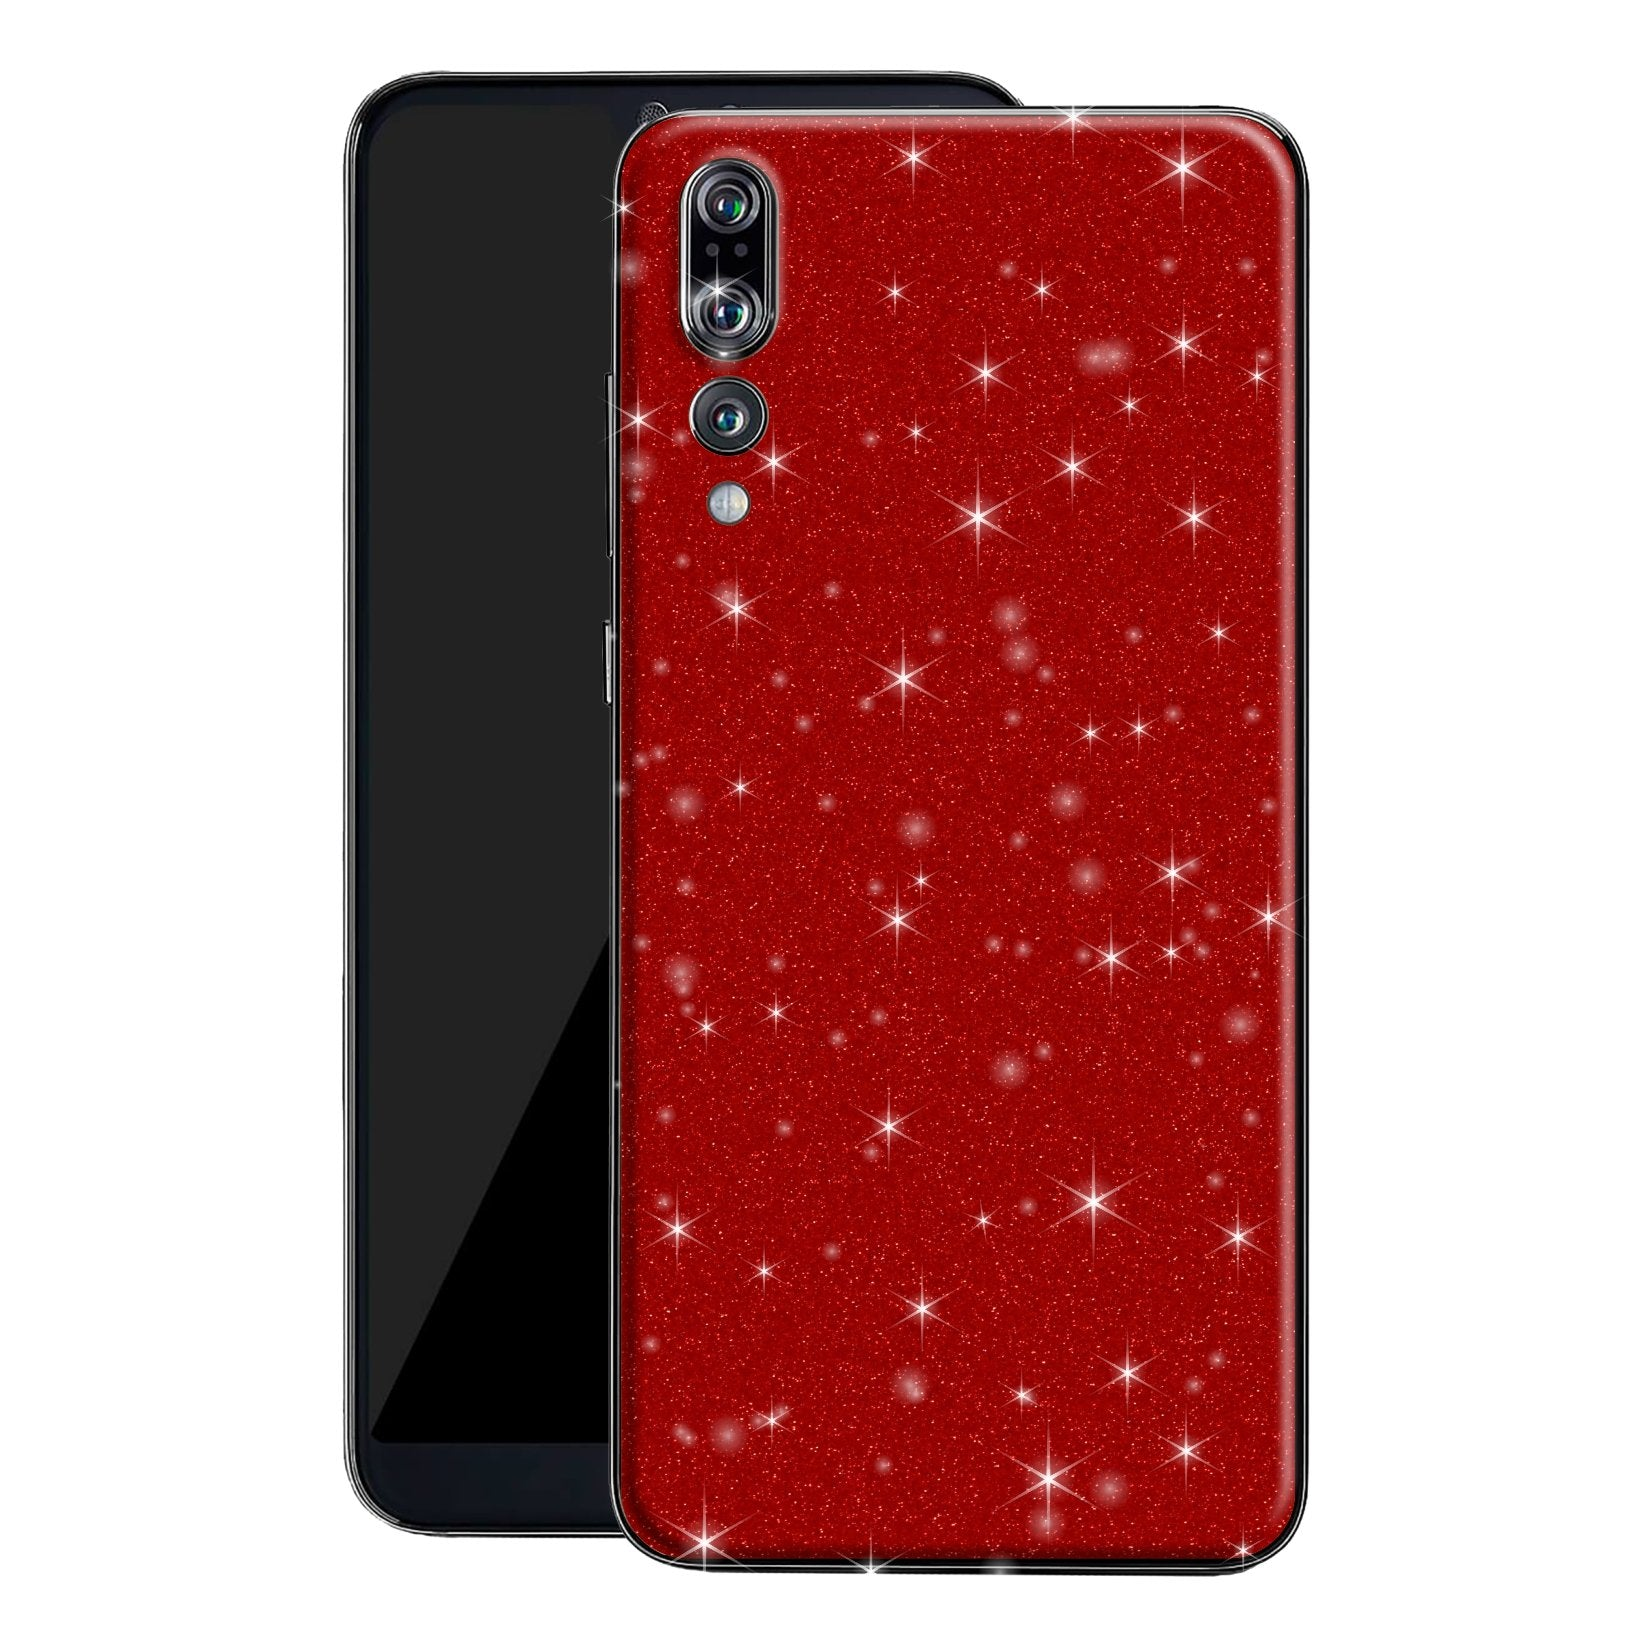 Huawei P20 PRO Diamond Red Shimmering, Sparkling, Glitter Skin, Decal, Wrap, Protector, Cover by EasySkinz | EasySkinz.com